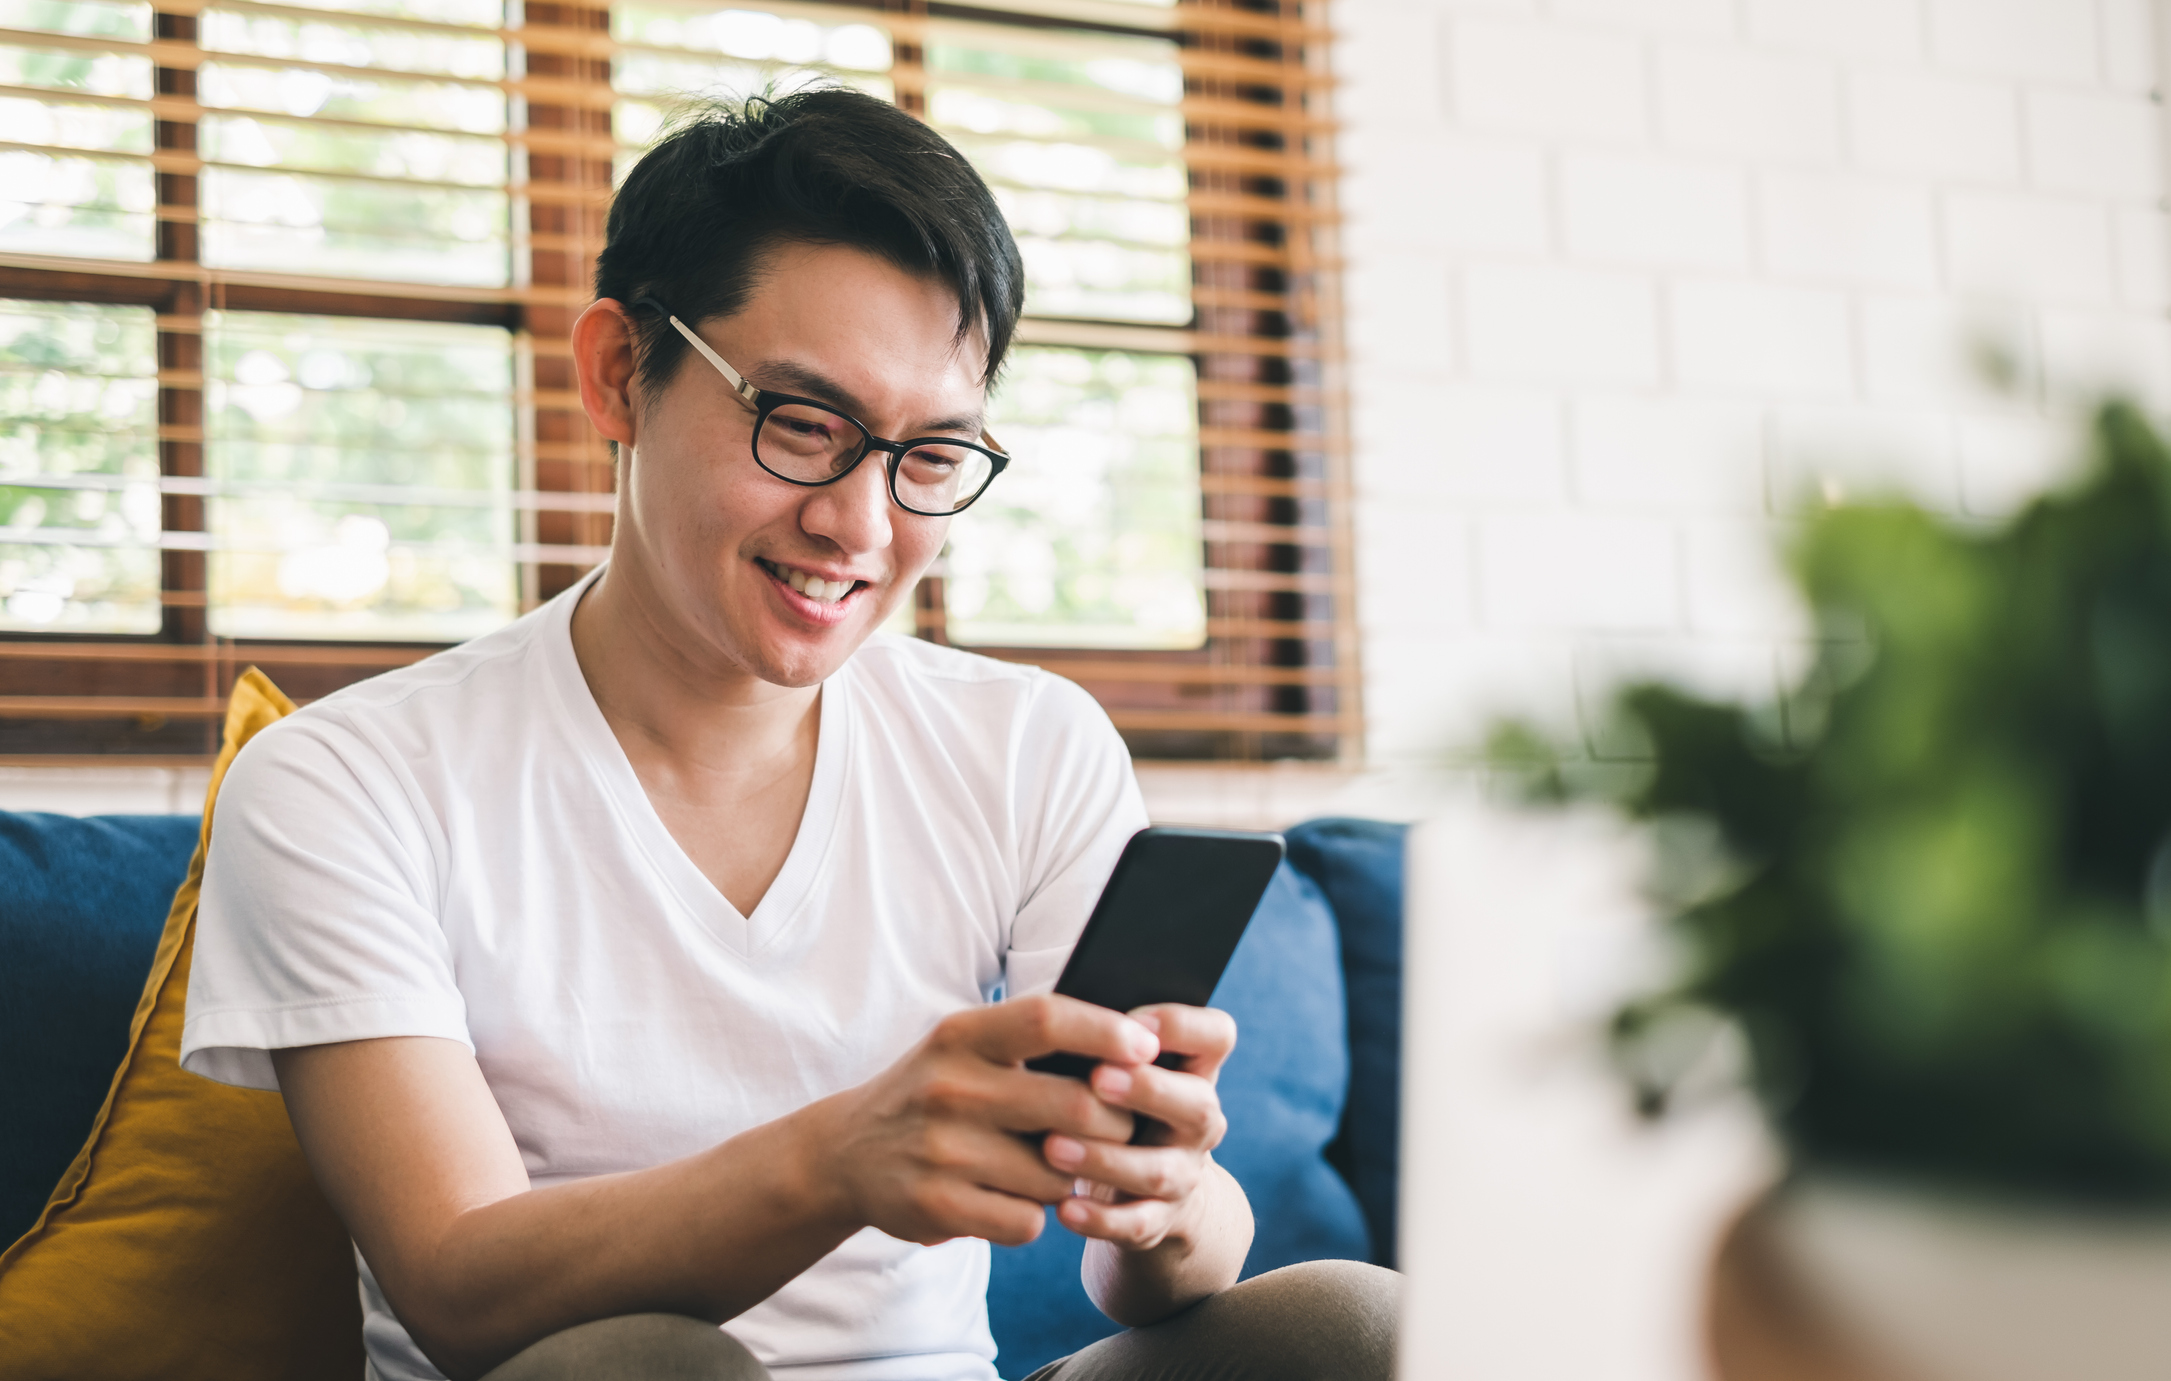 Stock photo of man sitting on sofa looking at his cell phone and smiling